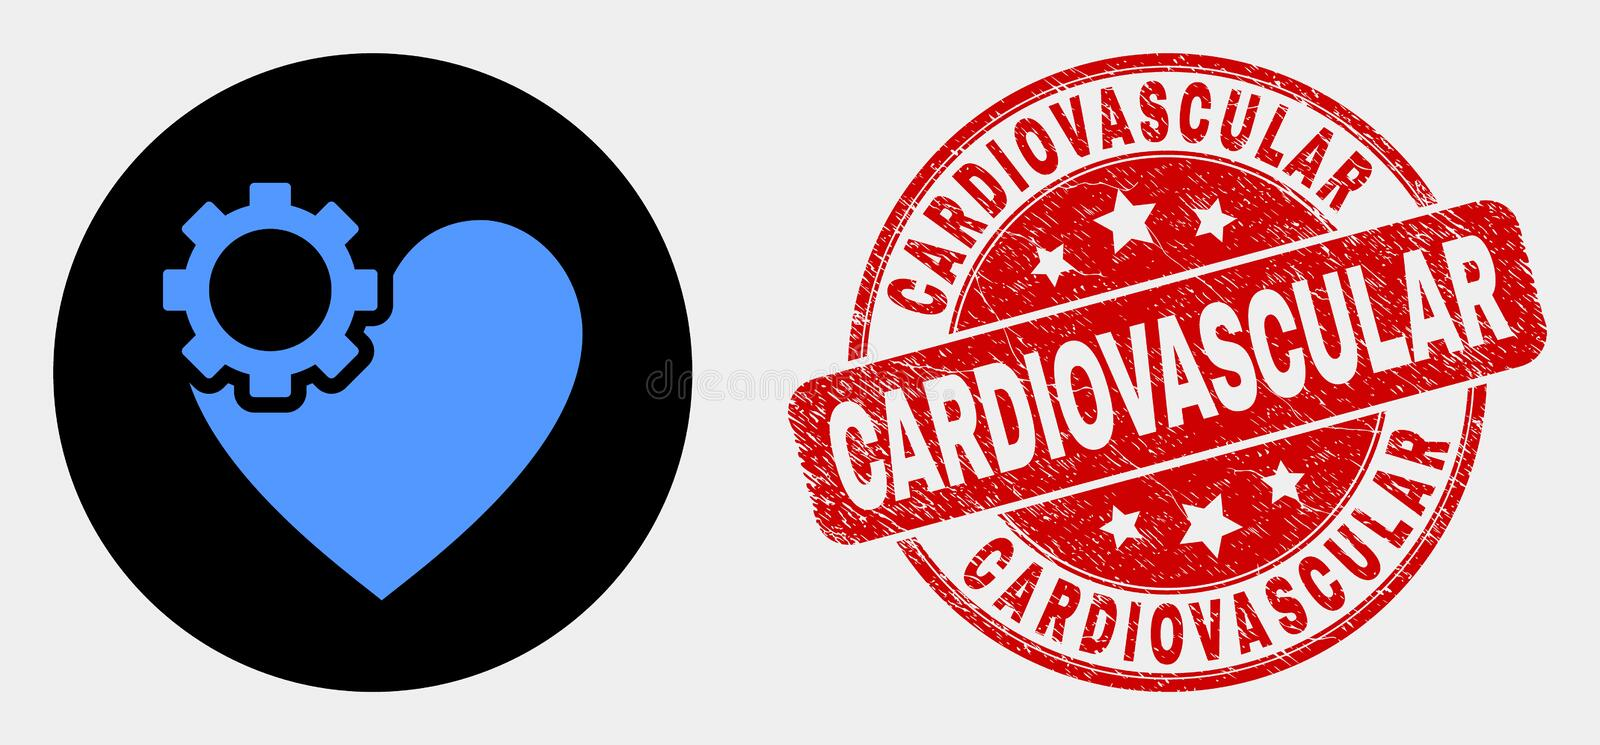 Vector Heart Gear Icon and Grunge Cardiovascular Stamp. Rounded heart gear pictogram and Cardiovascular stamp. Red rounded grunge stamp with Cardiovascular text royalty free illustration